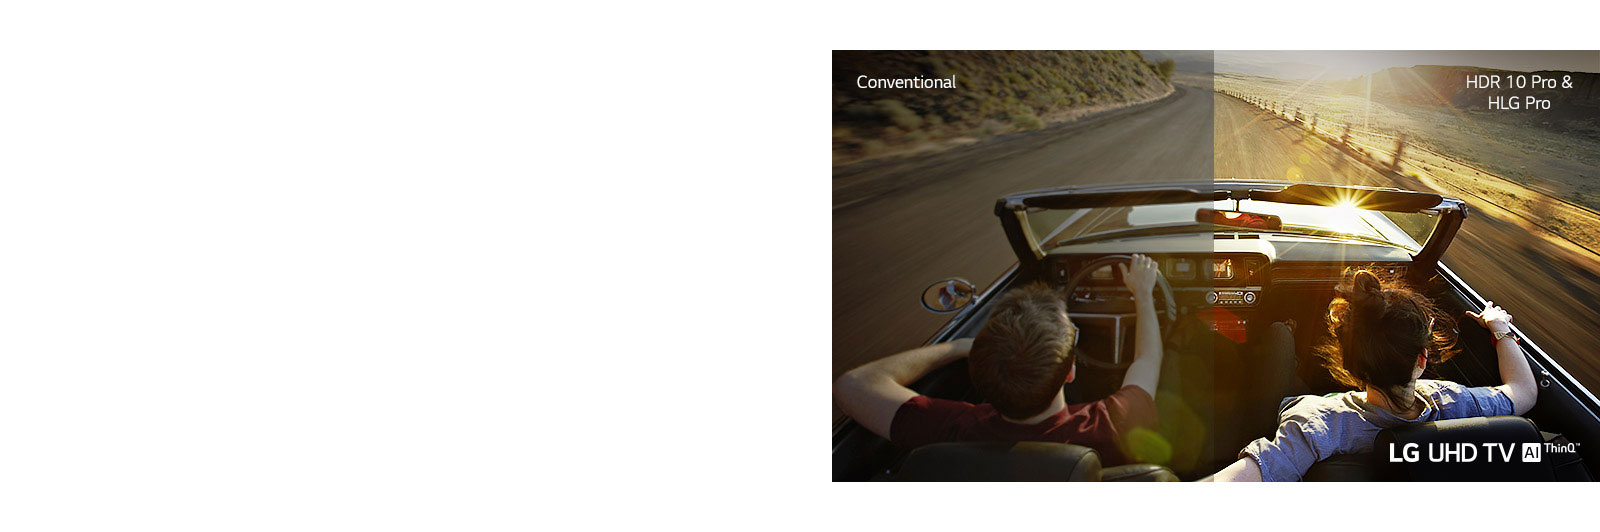 A couple inside a car moving on a road. Half scene is shown on a conventional screen with low picture quality. The other half is shown with the sharp and vivid picture quality of the LG UHD TV.